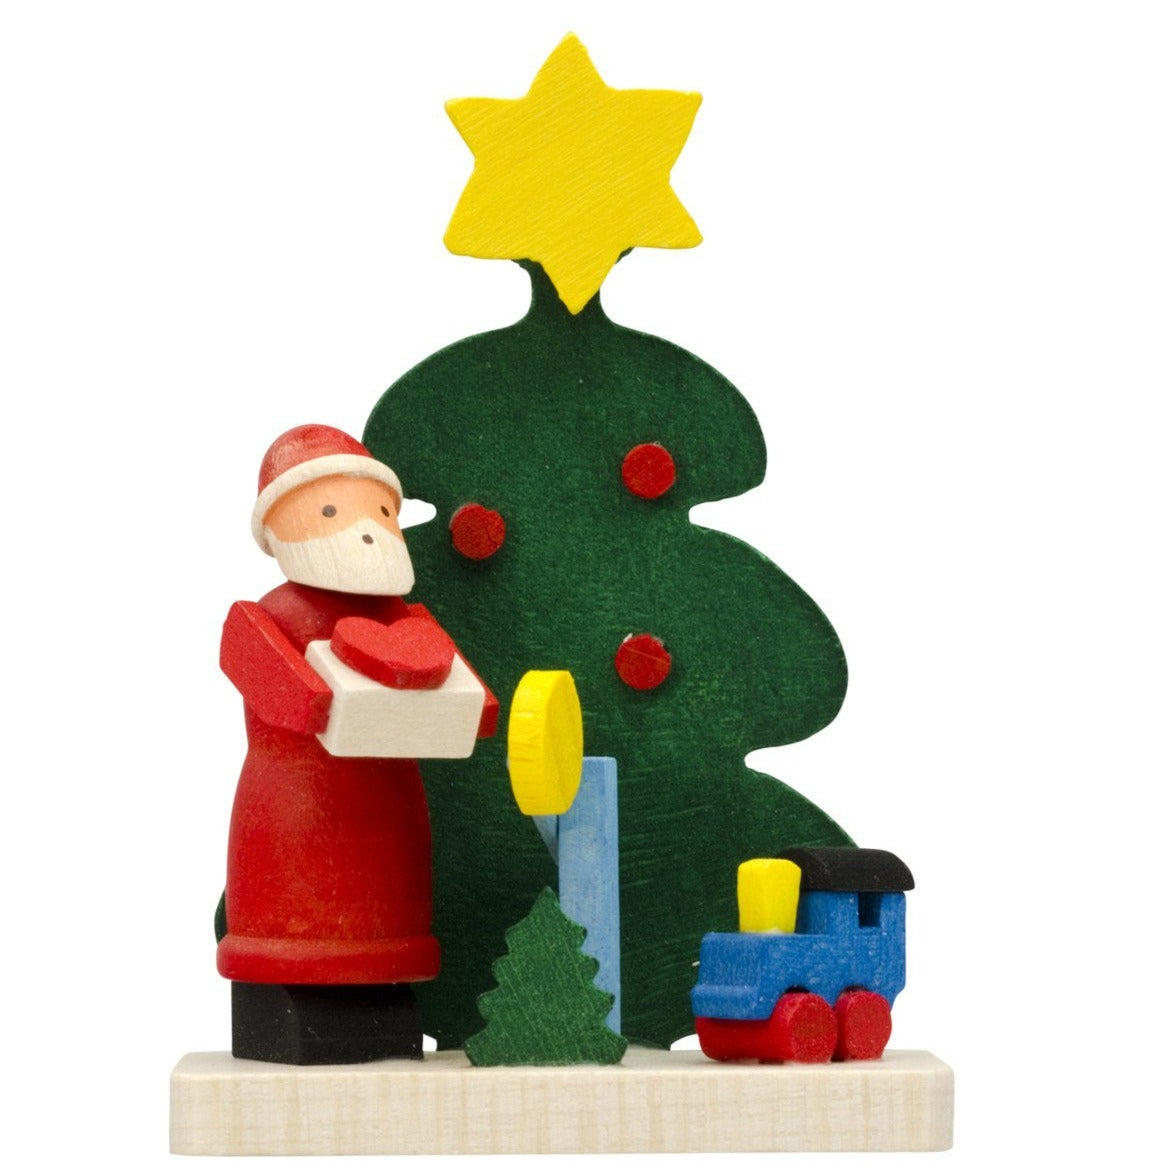 Under the tree with Santa - Train and Heart-Shaped Present - Christmas tree decoration